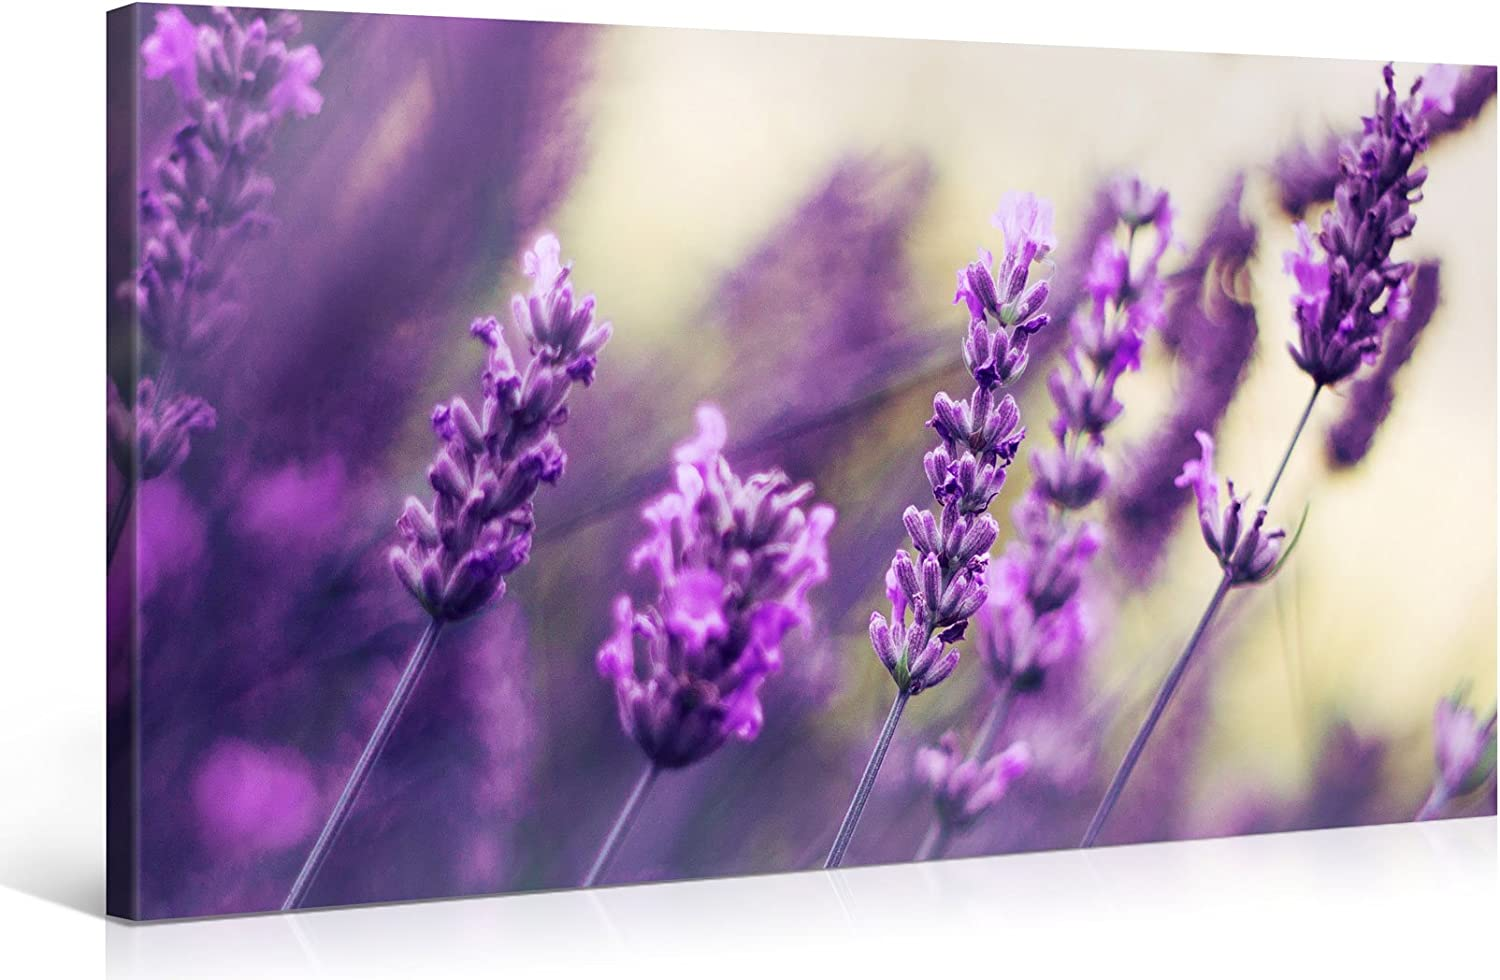 Large Canvas Print Wall Art Purple Lavender 40x20 Inch Flower Canvas Picture Stretched On A Wooden Frame Giclee Canvas Printing Hanging Wall Deco Picture E6465 Posters Prints